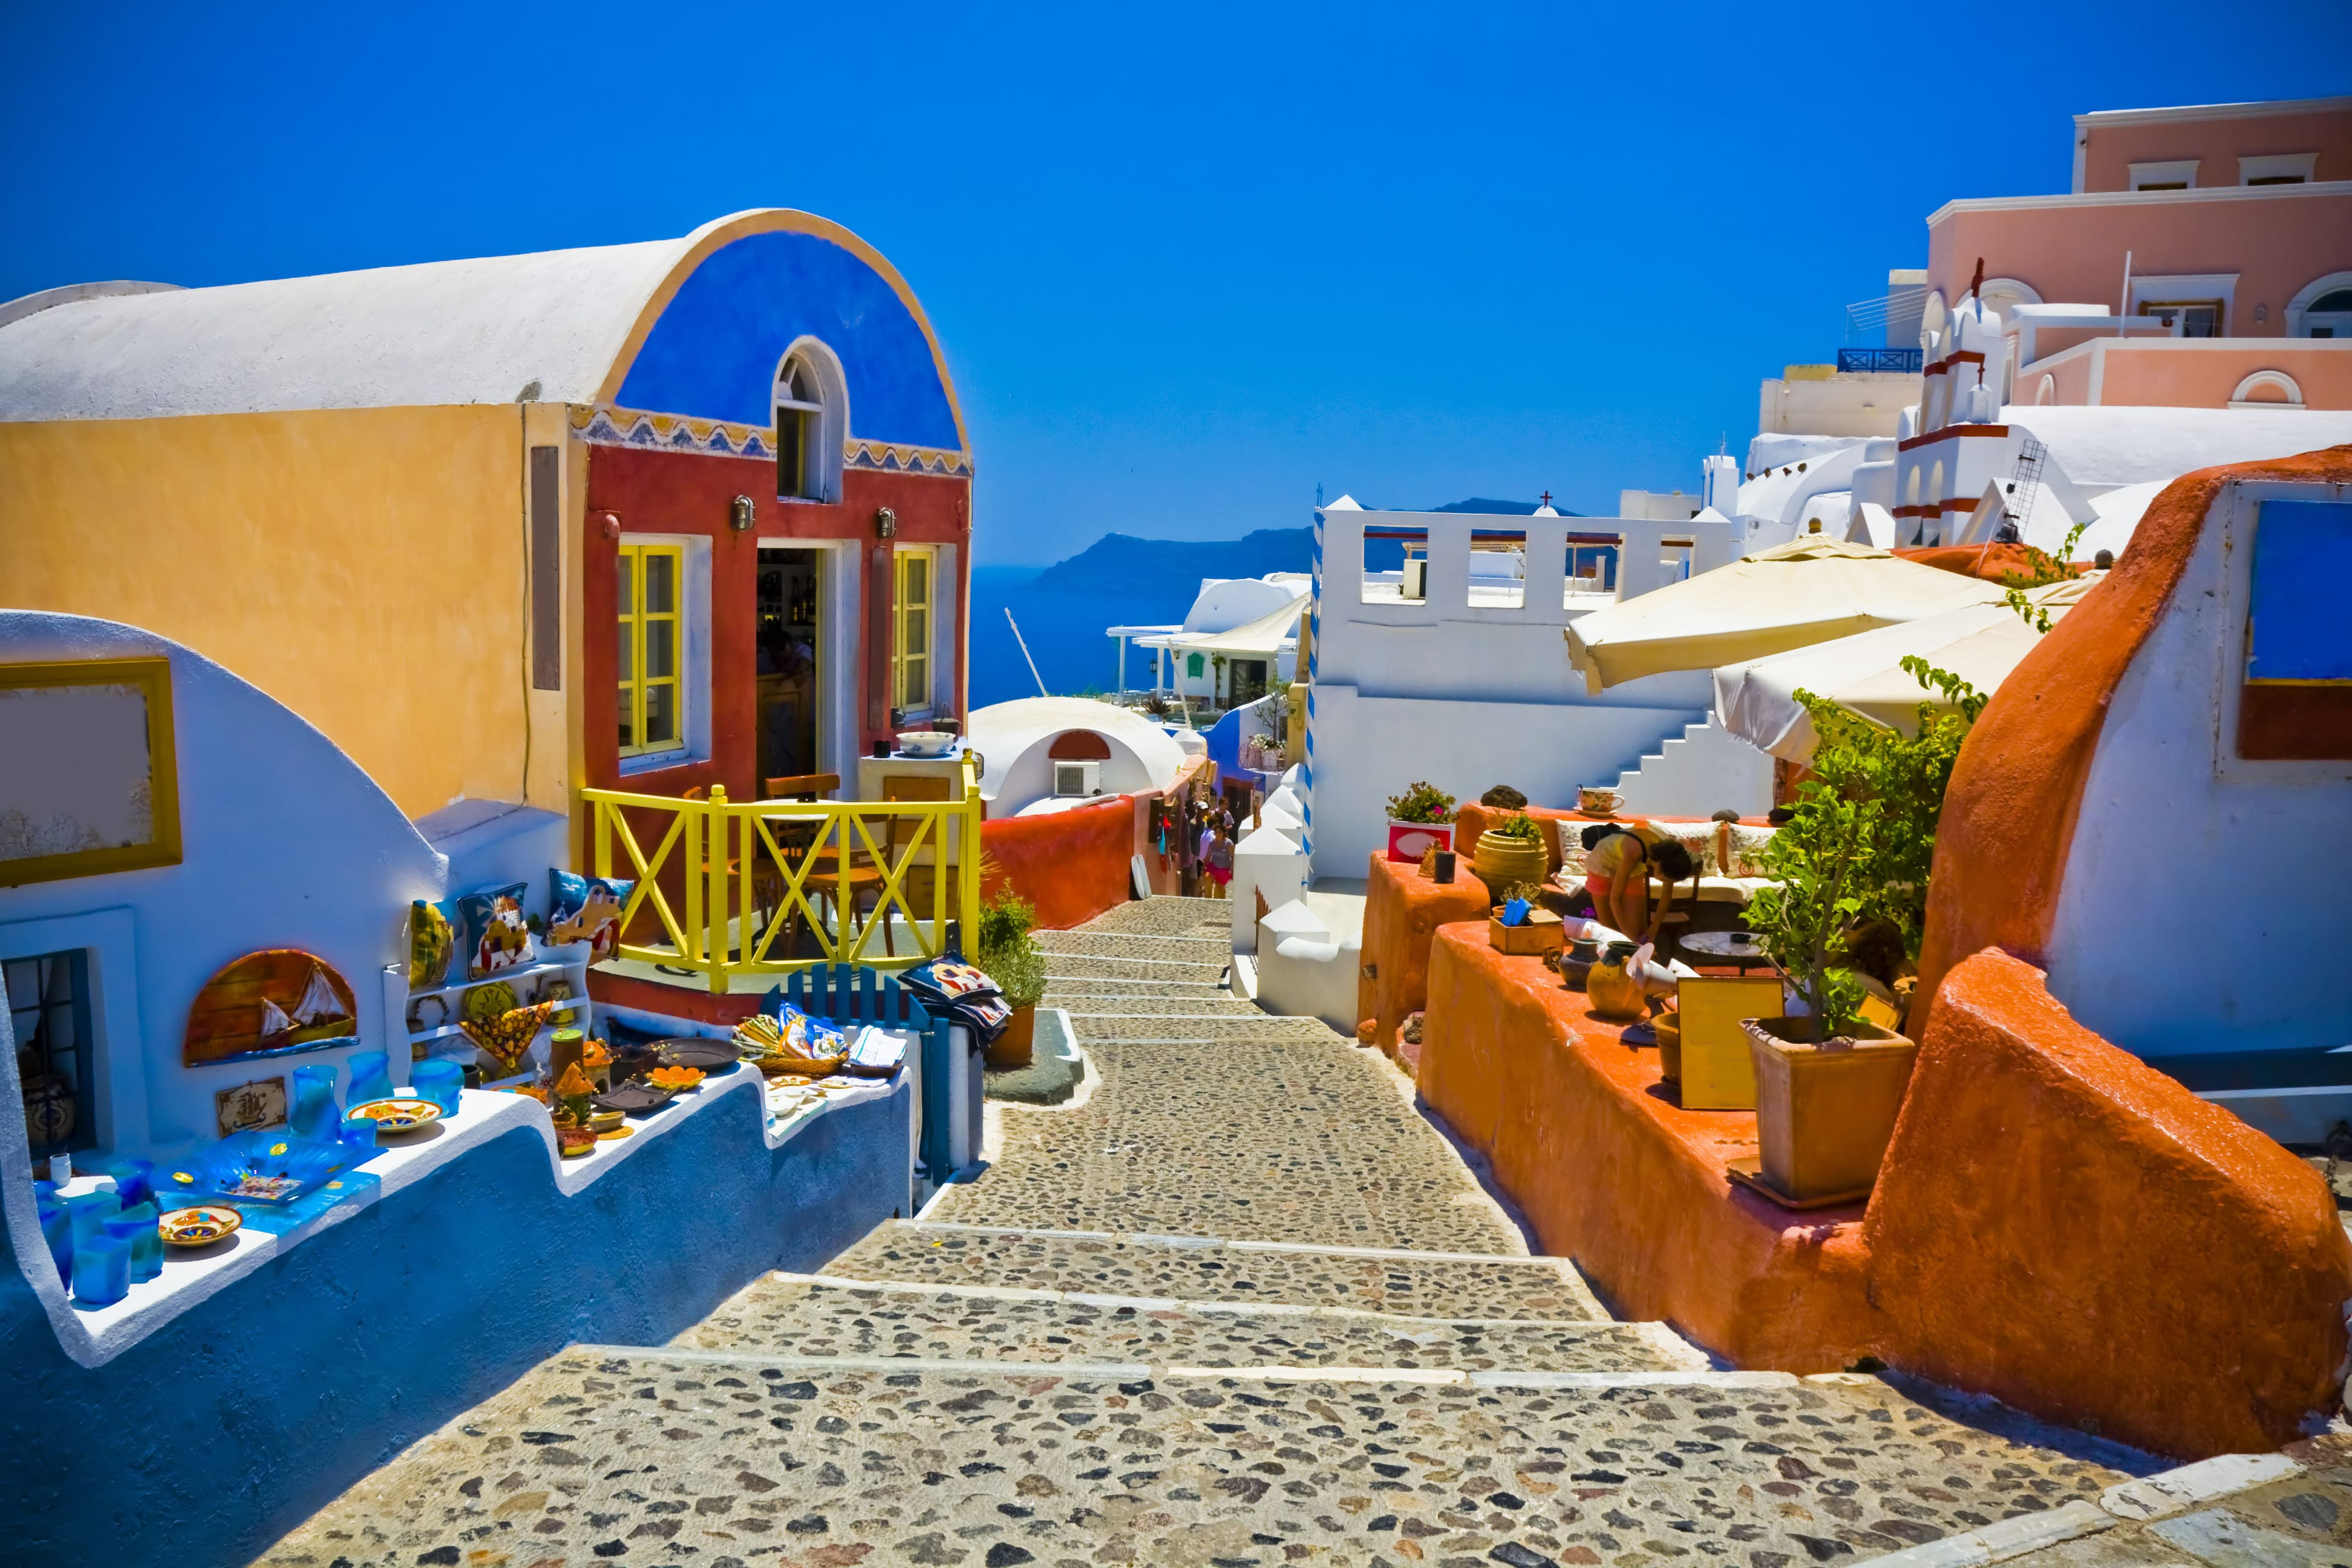 Bright And Colorful Houses In Santorini 4k Ultra HD Wallpaper